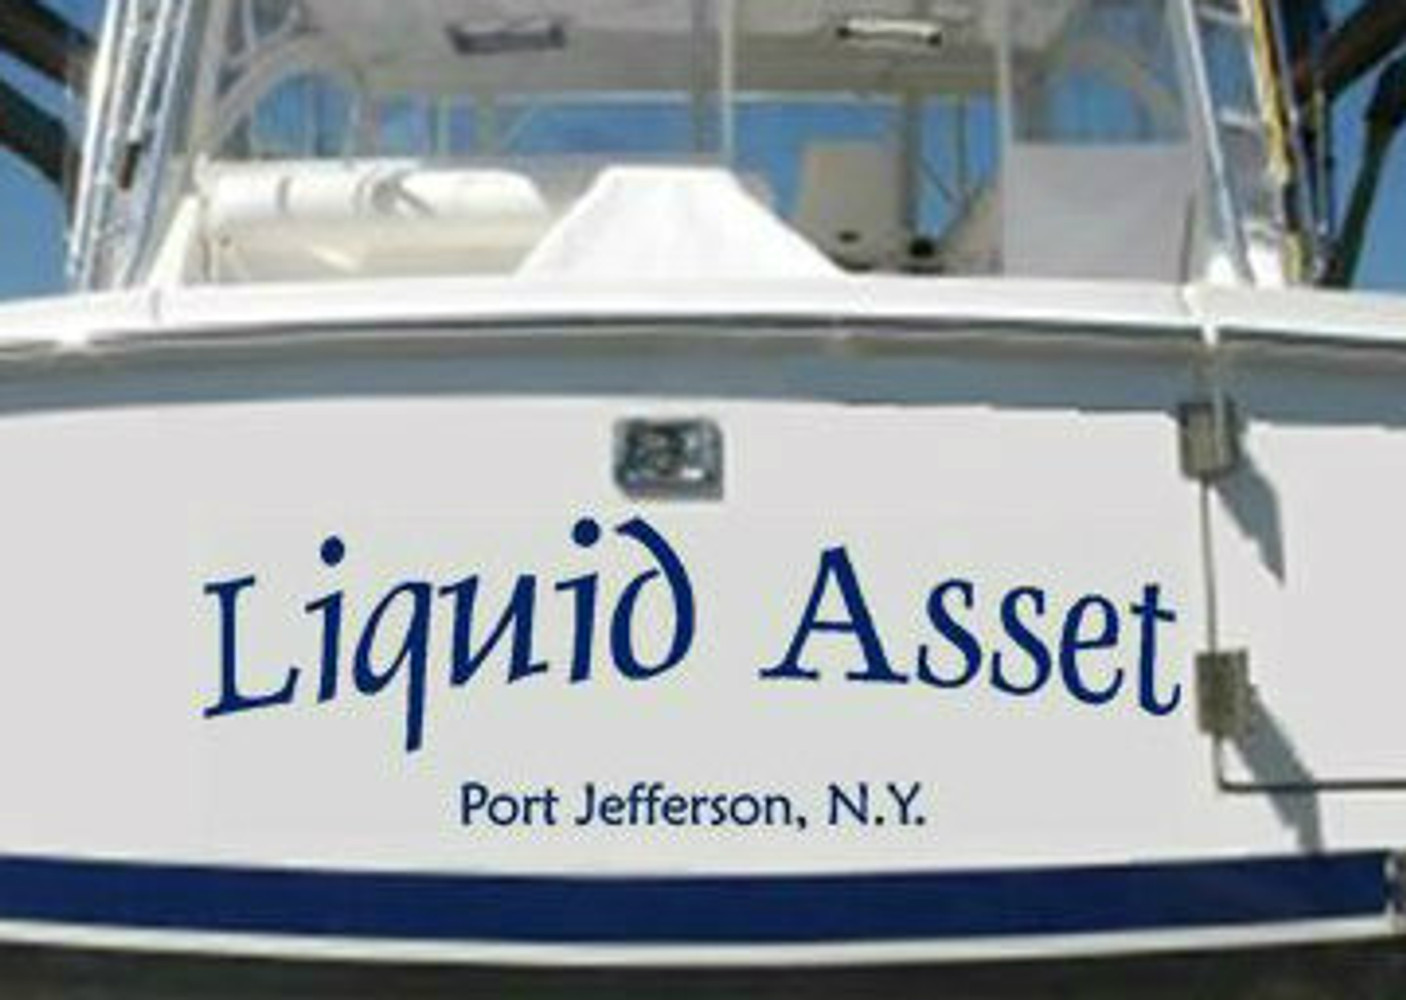 Is Your Boat Ready for Spring? She Will Be with New Stripes, Name and Registration Numbers